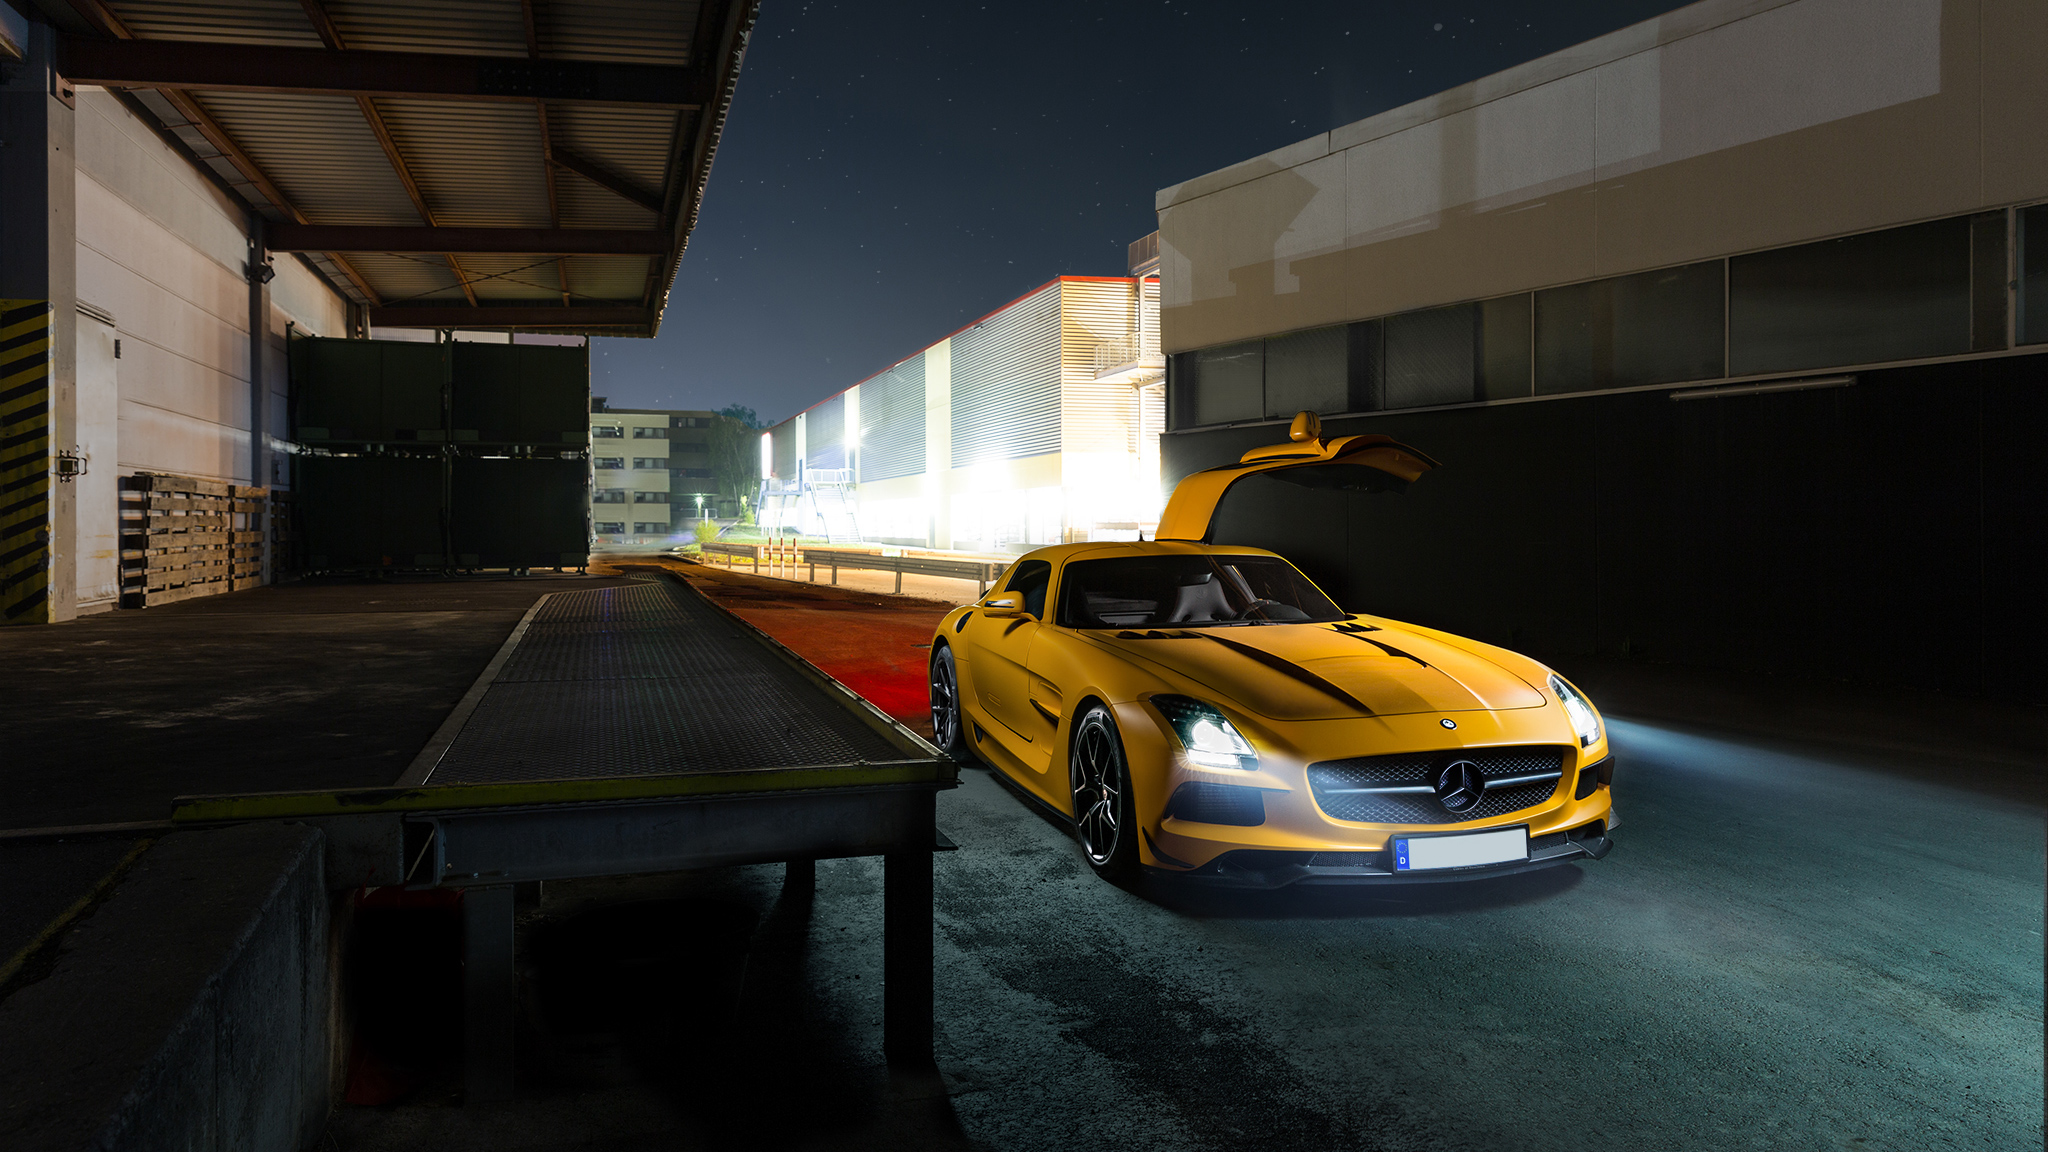 Mercedes Benz Amg GT Yellow, HD Cars